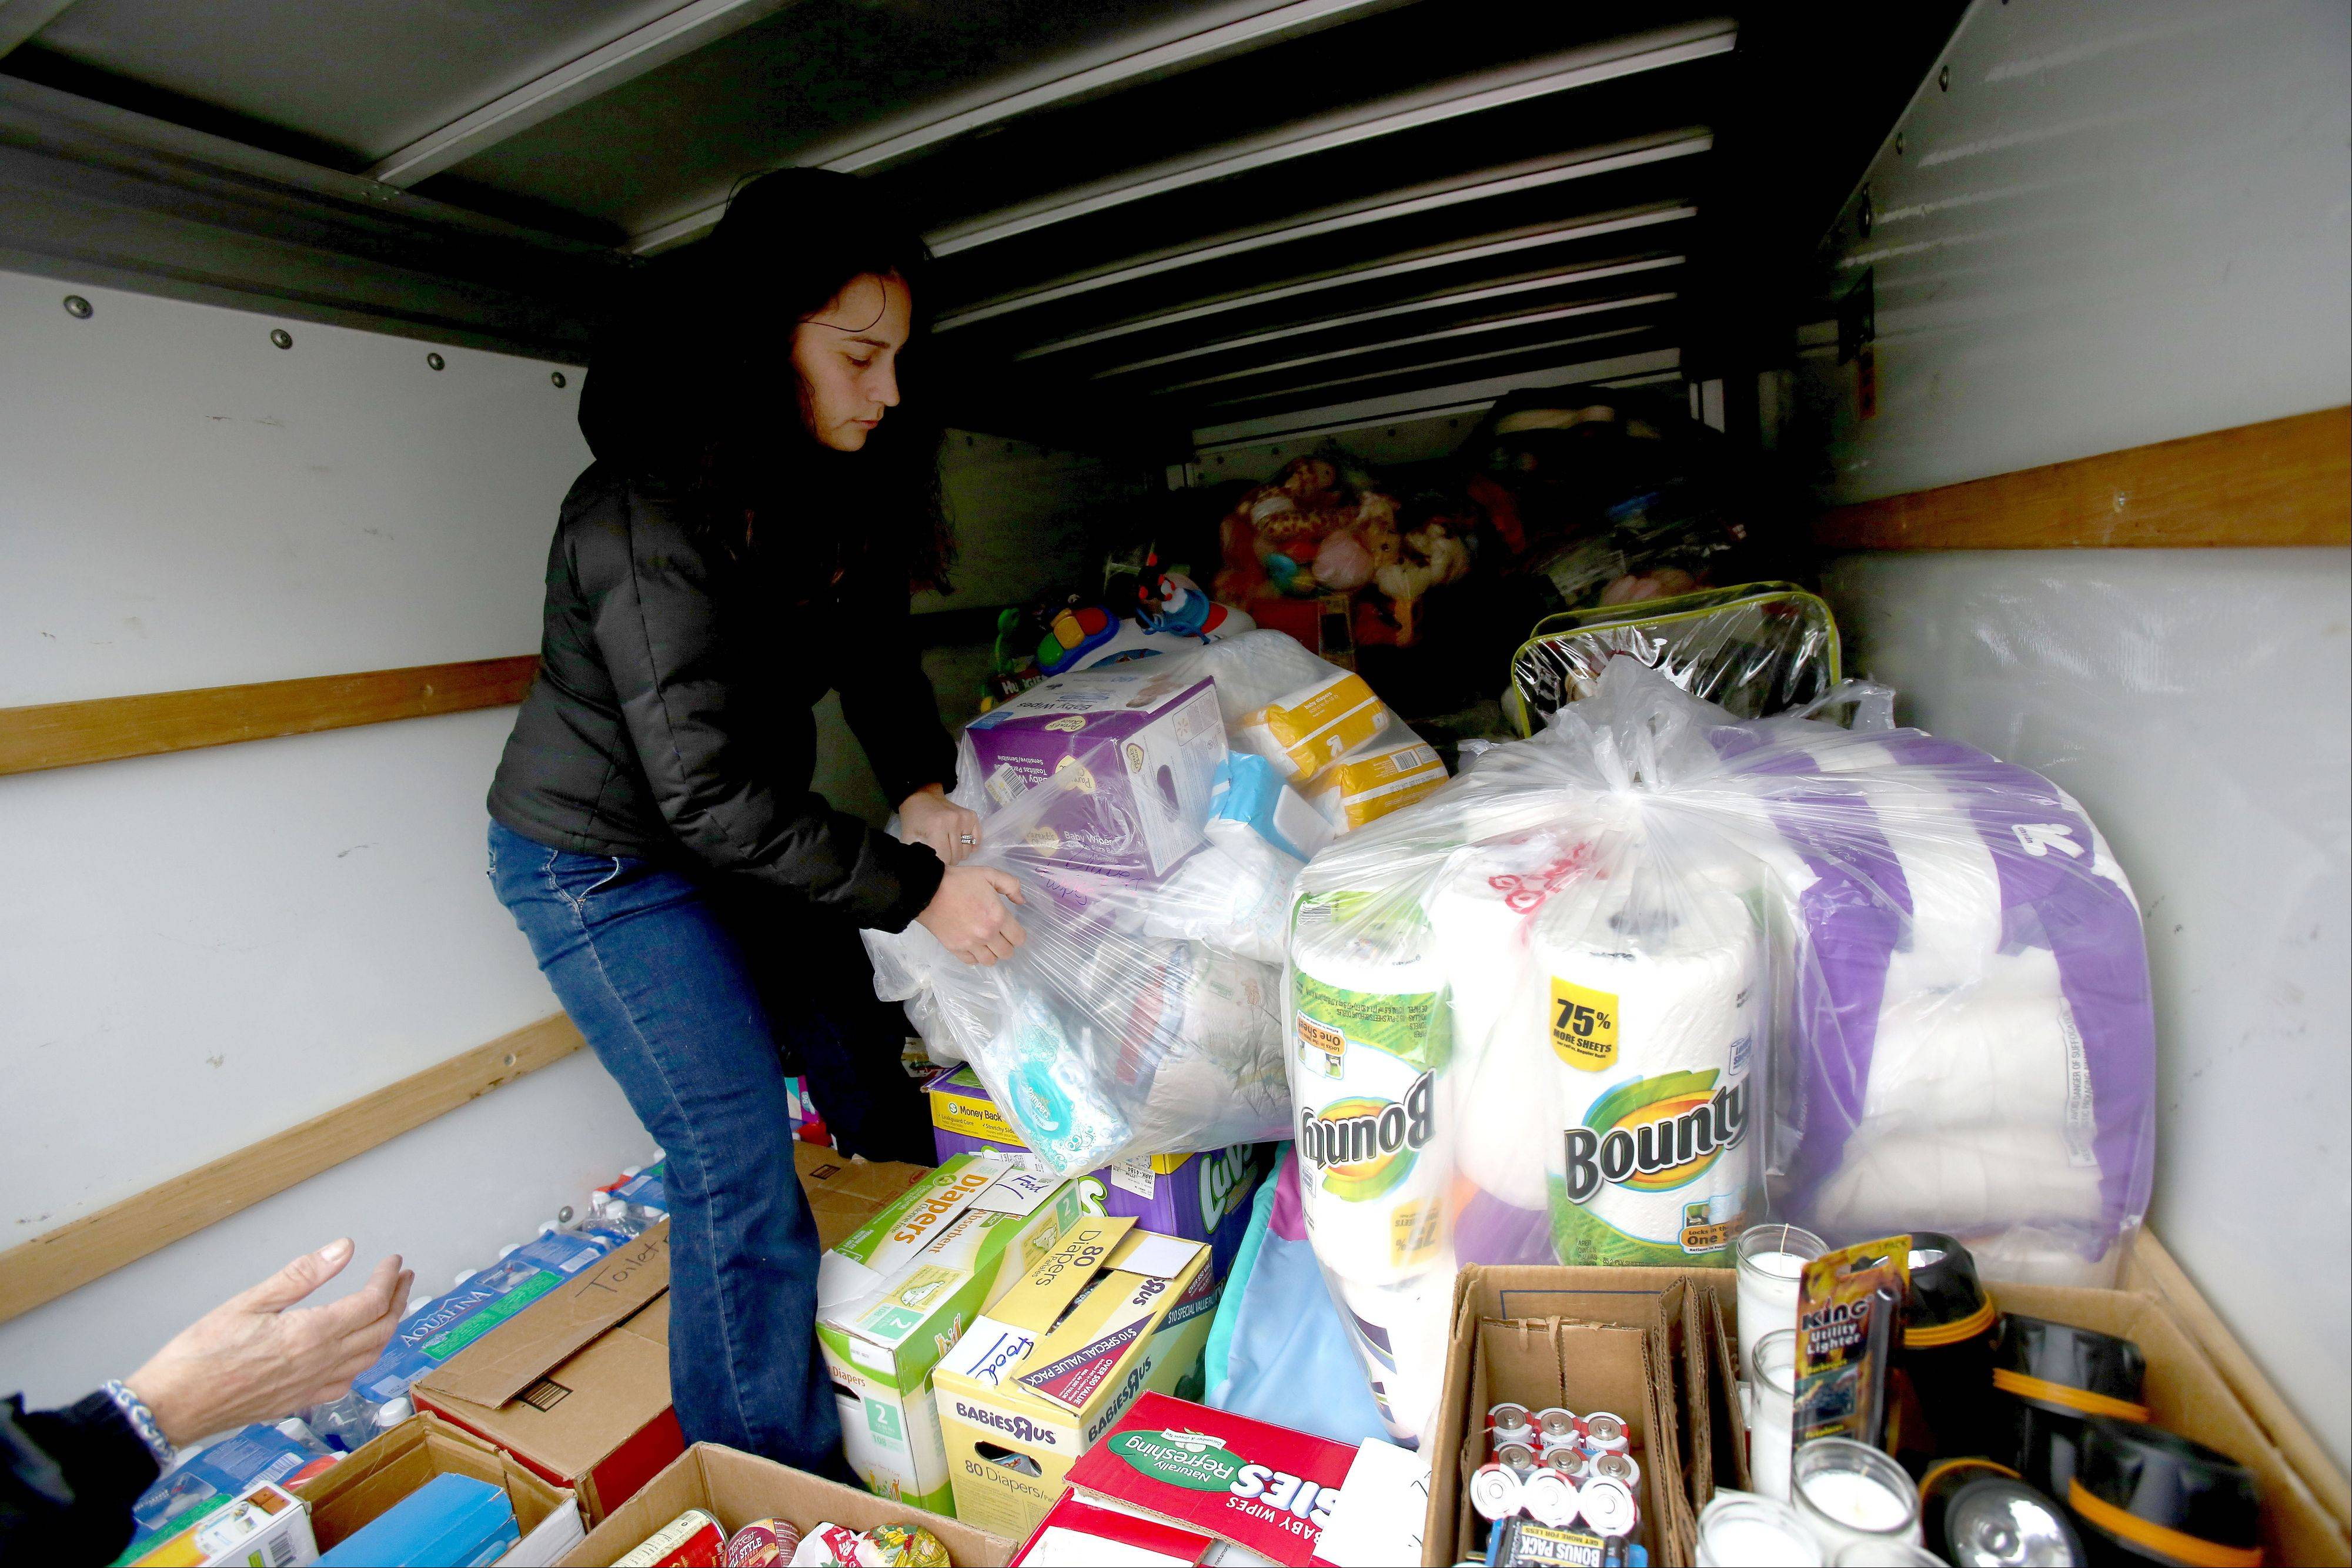 Wheaton residents and businesses donated items ranging from dental supplies to toiletries, clothes and baby items.